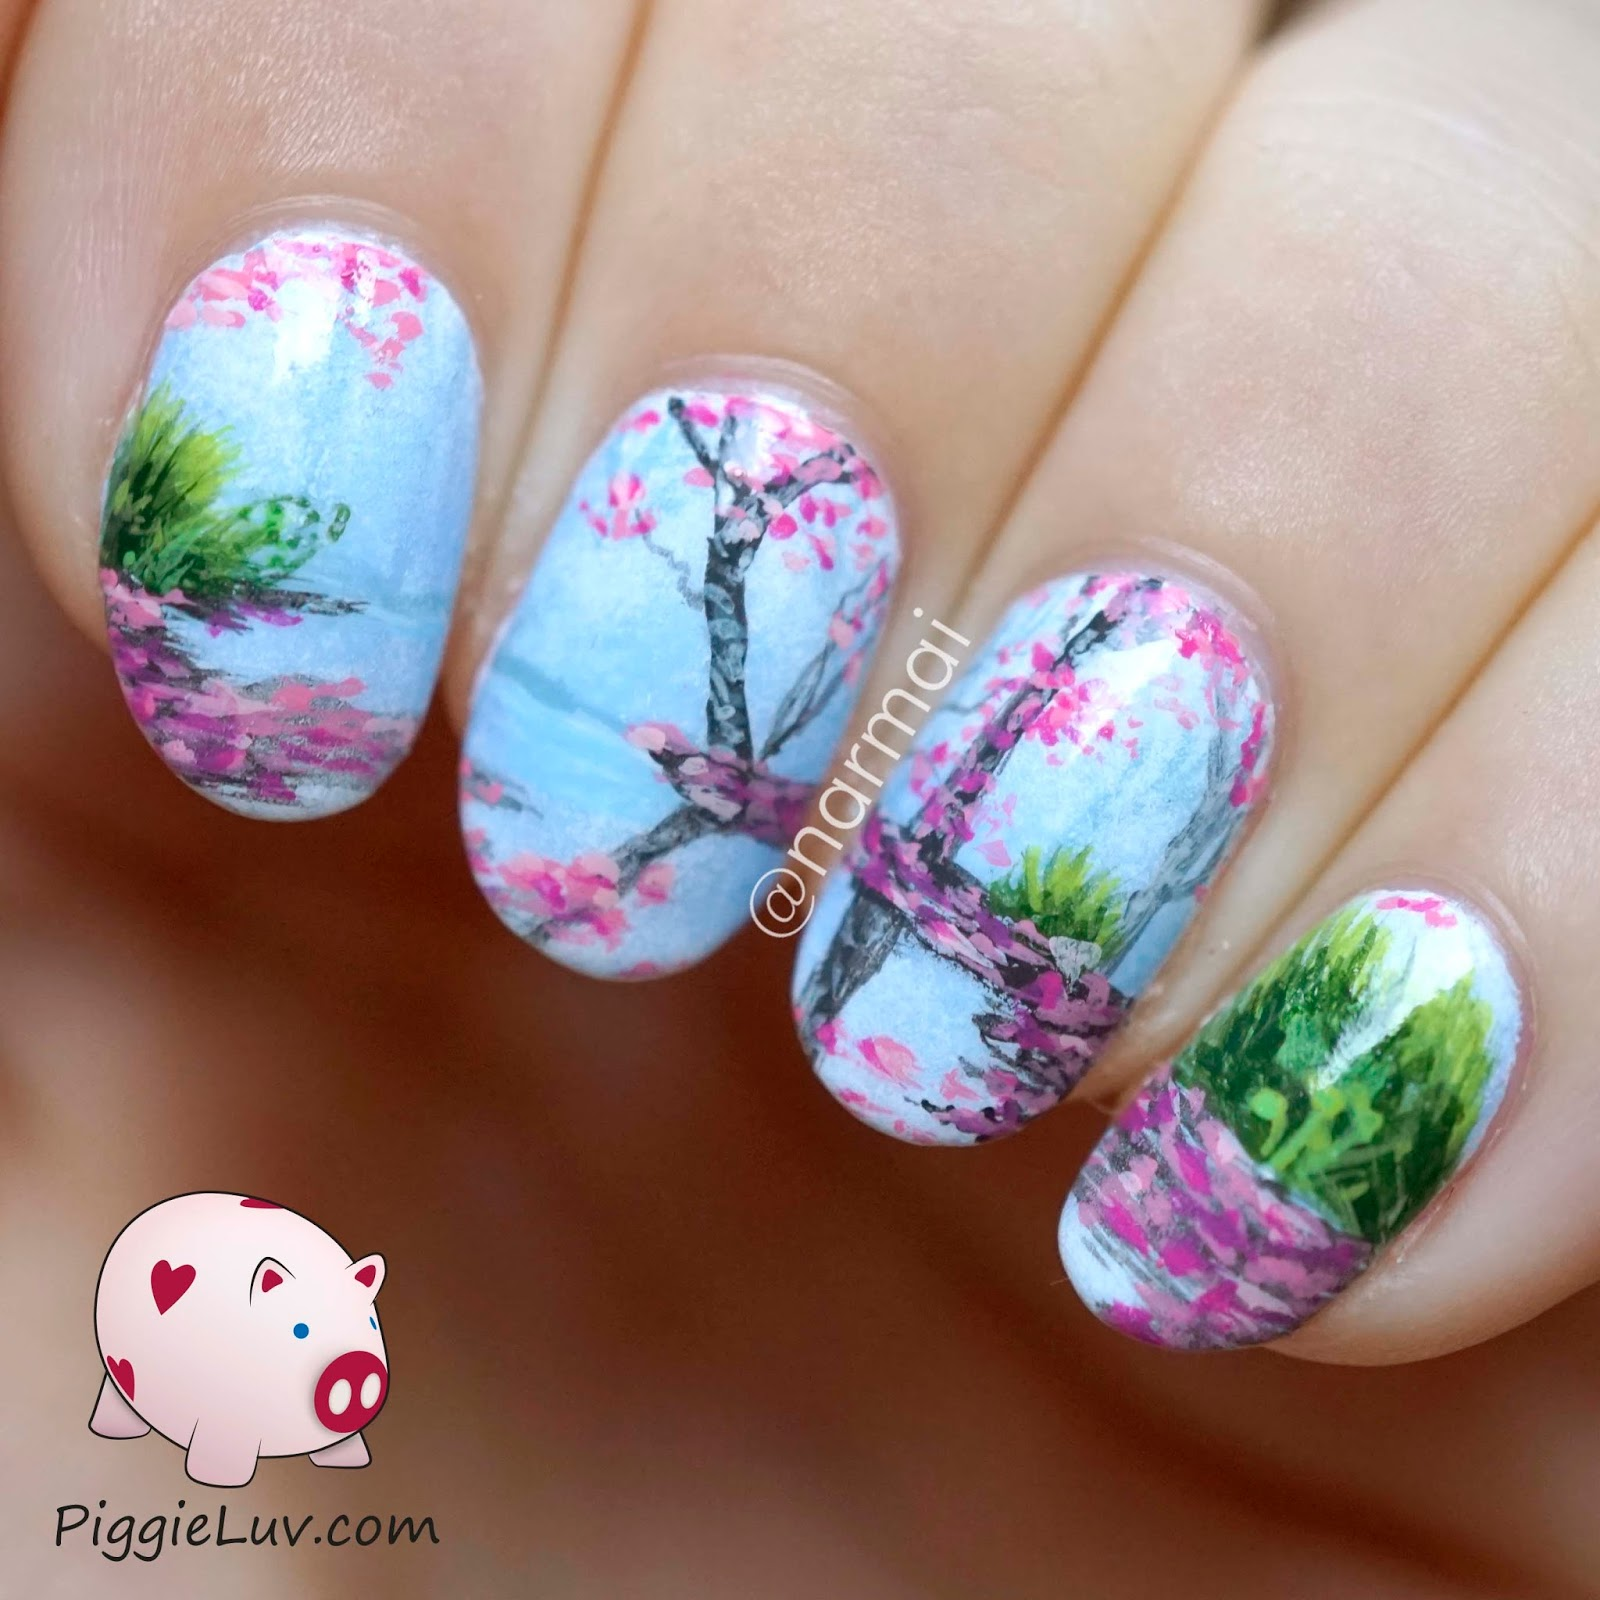 Piggieluv freehand blossoms landscape nail art imagine floating in a boat on a hot day through a landscape of blossoms you smell the amazing fresh air as you row through alternating patches of sun prinsesfo Image collections